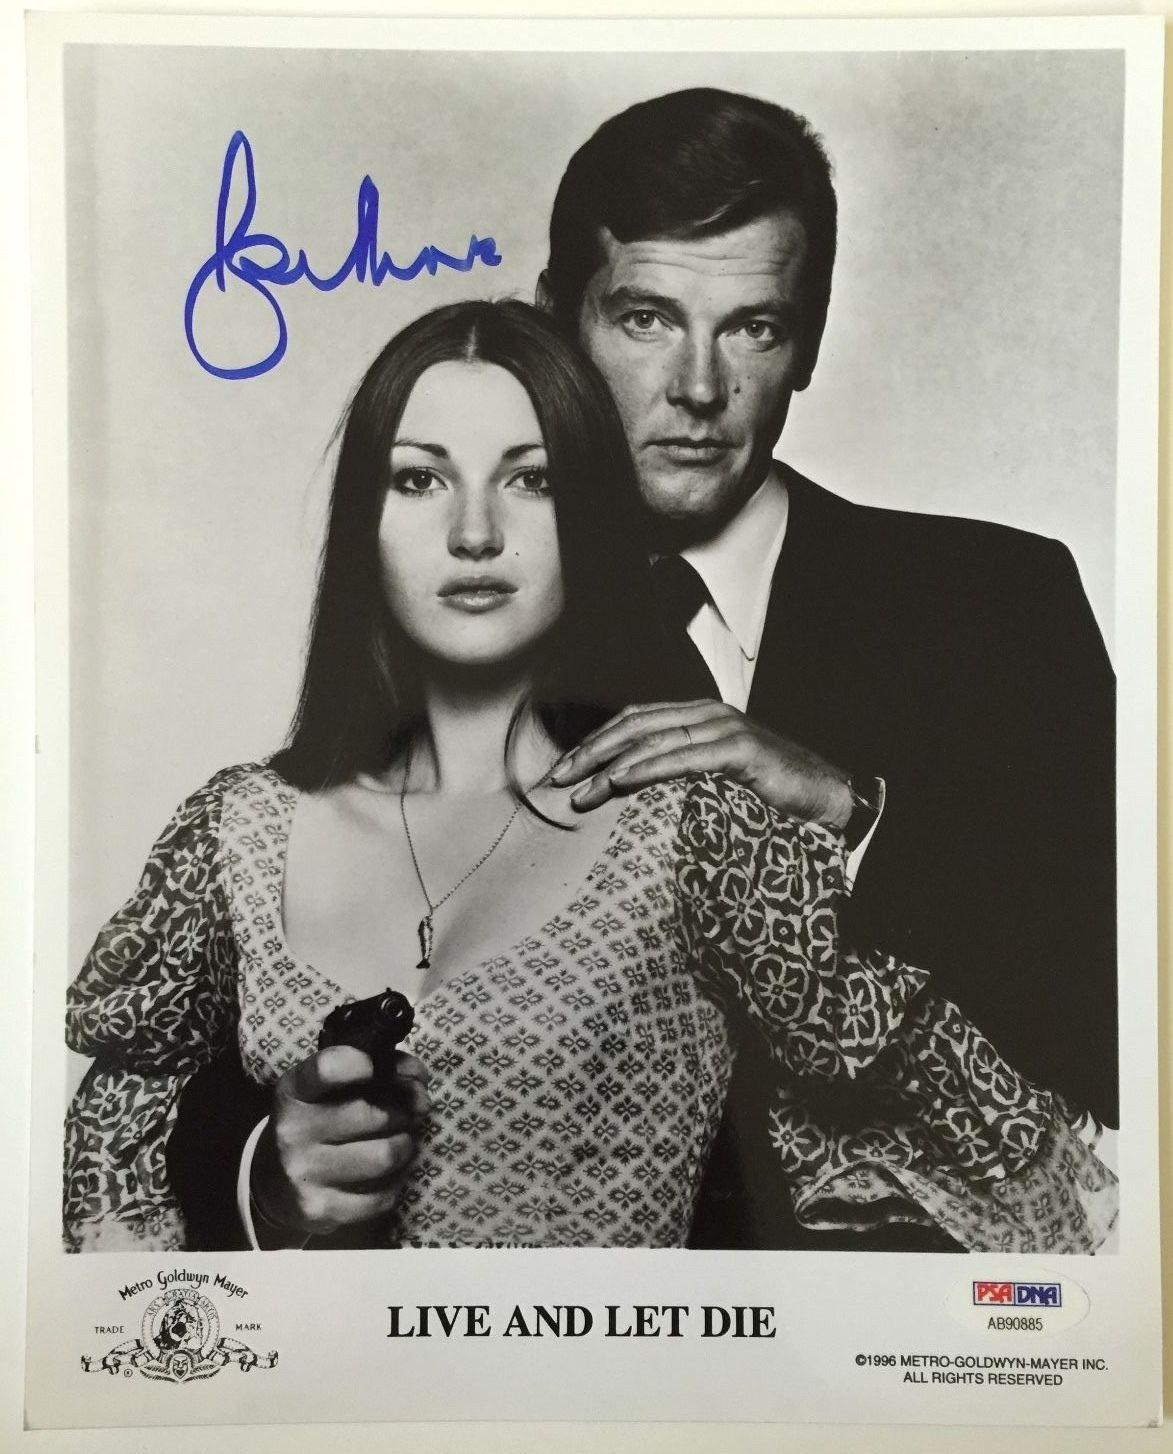 ROGER MOORE Signed JAMES BOND 007 Live and Let Die Movie 8x10 Photo PSA/DNA COA